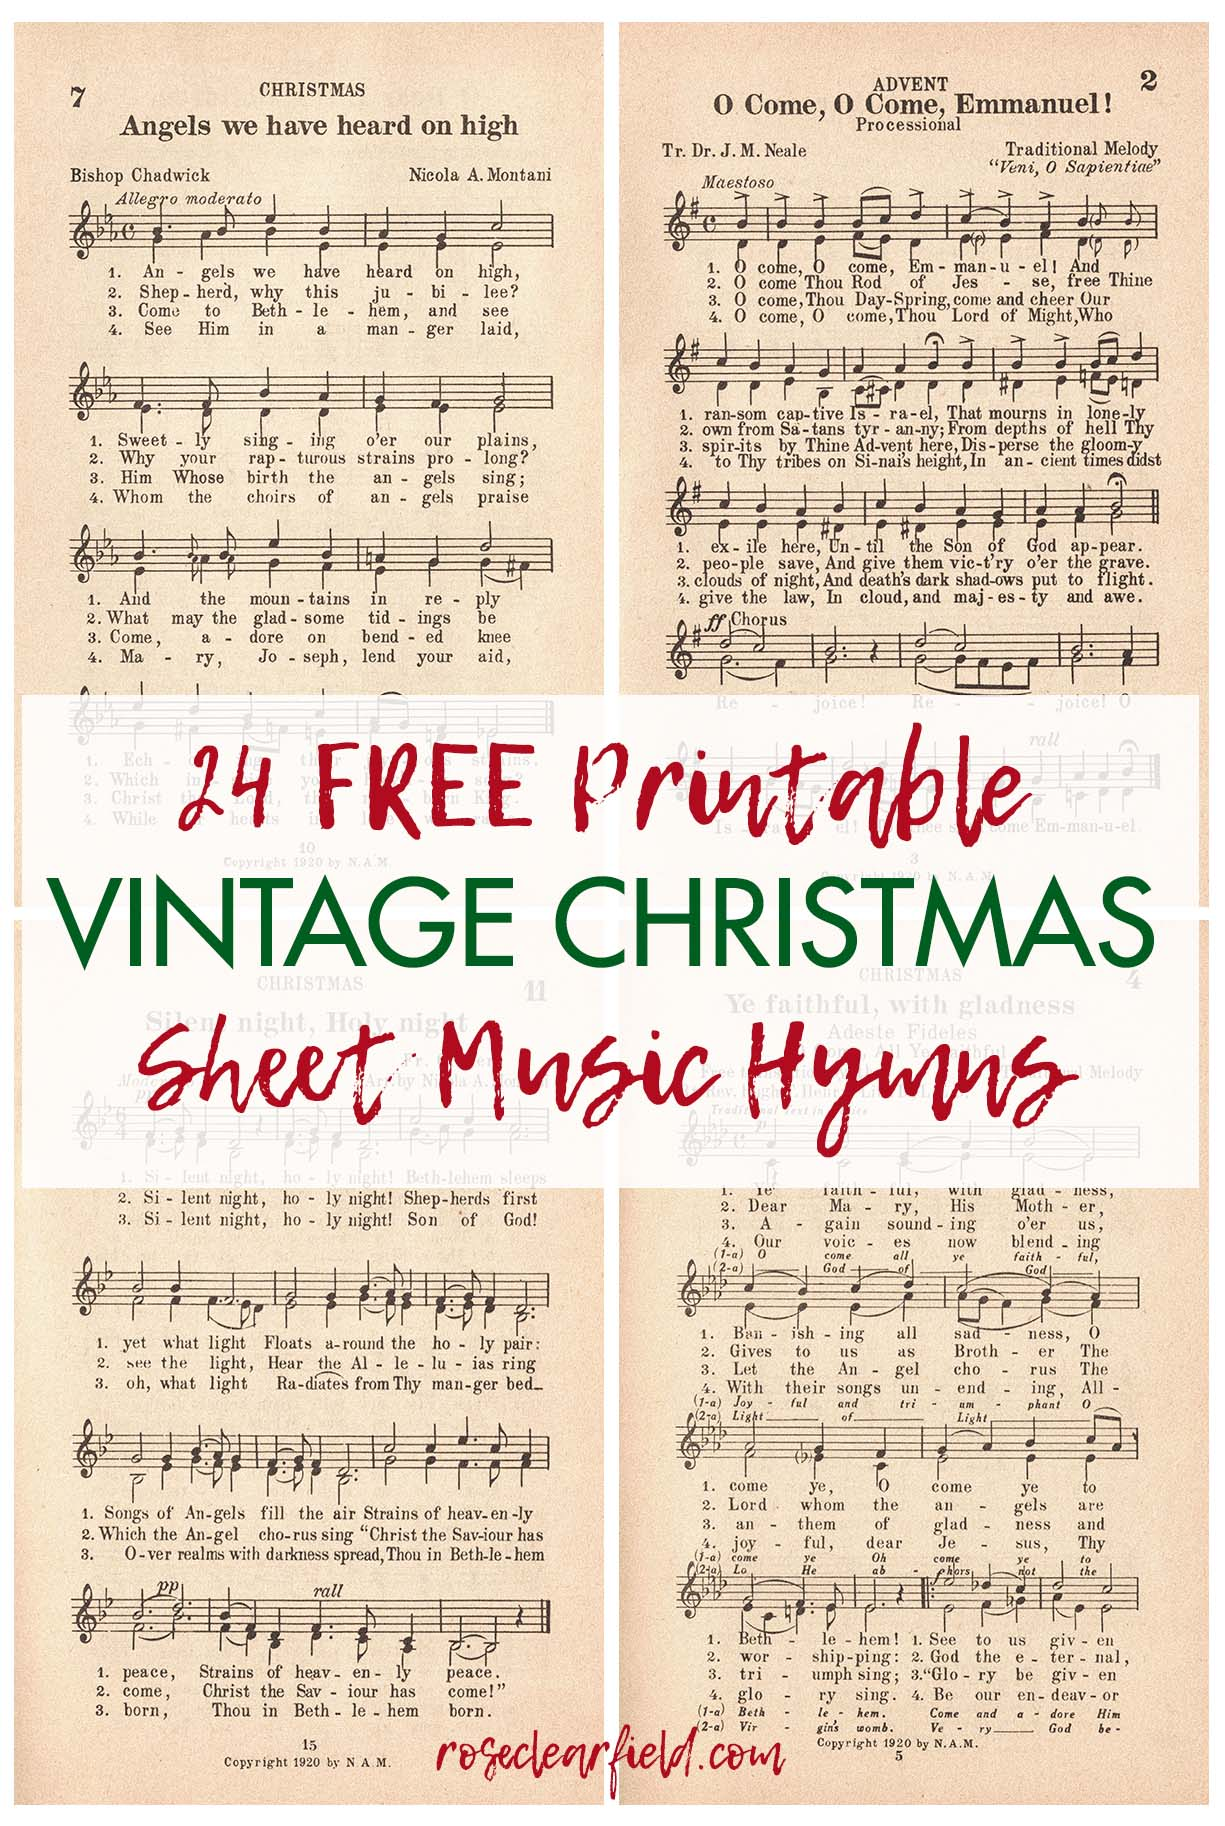 24 Printable Vintage Christmas Sheet Music Hymns • Rose Clearfield